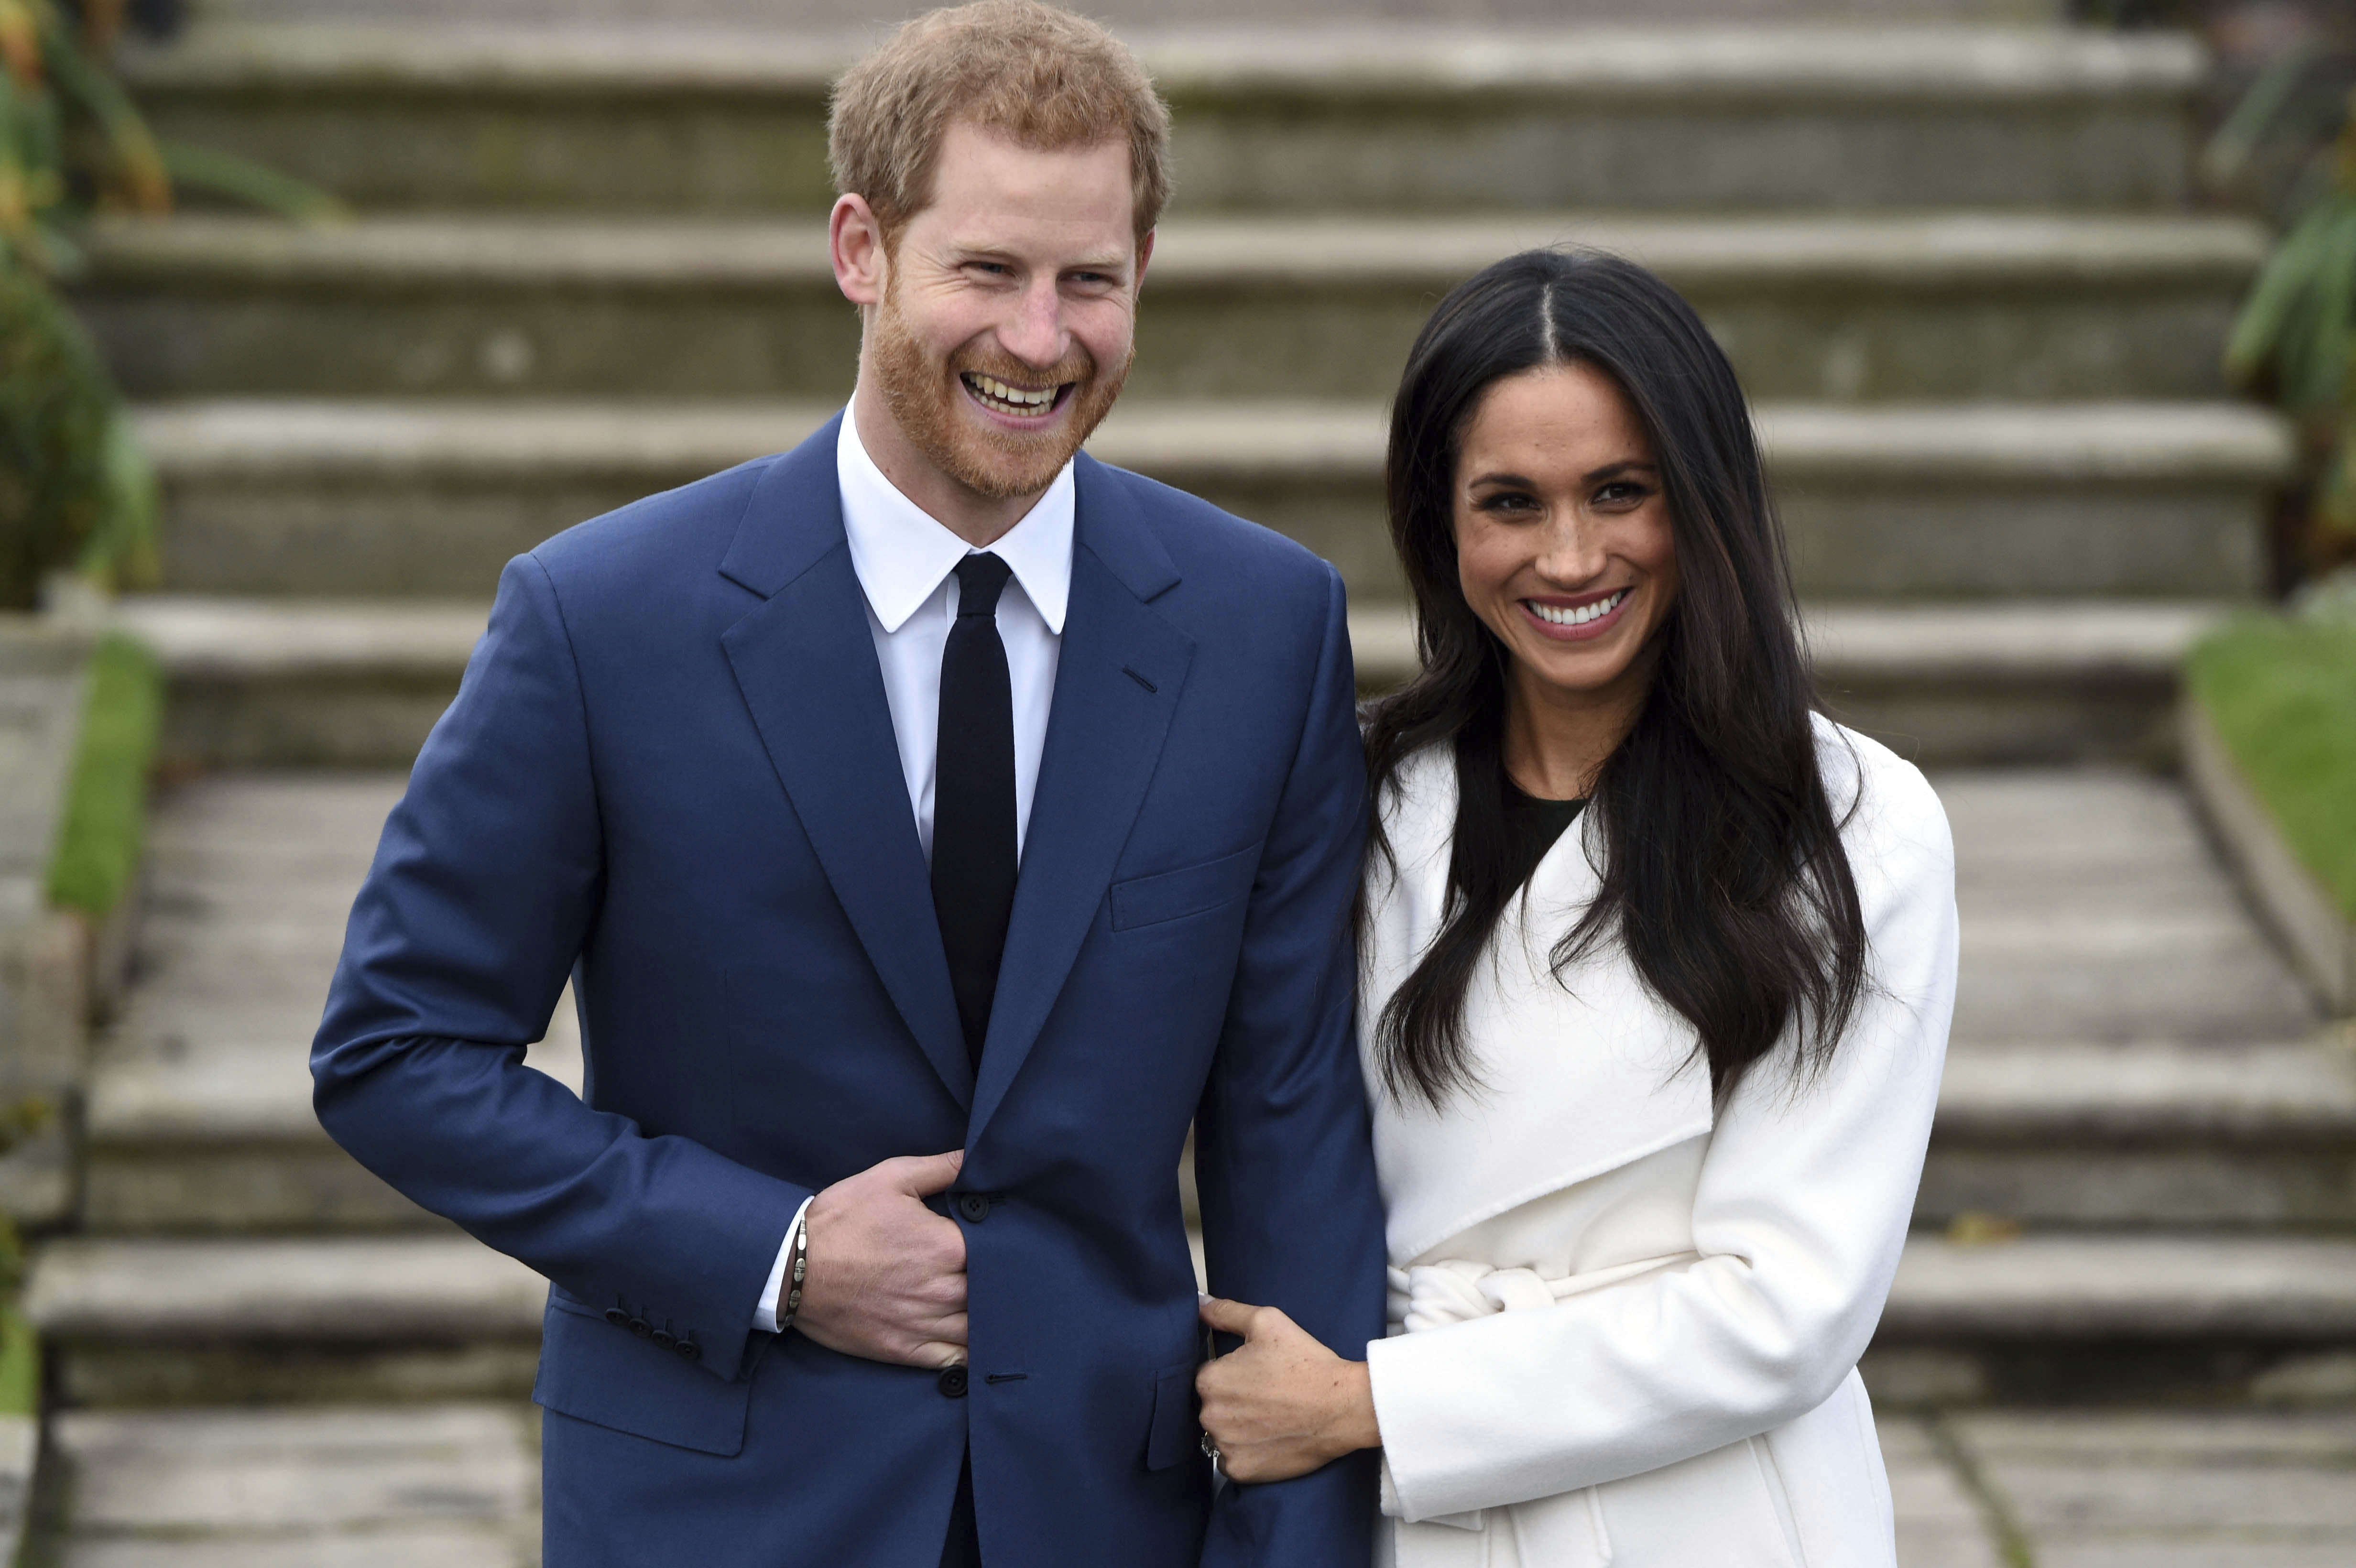 January 9th 2020 - Prince Harry The Duke of Sussex and Duchess Meghan of Sussex intend to step back their duties and responsibilities as senior members of the British Royal Family. - File Photo by: zz/KGC-375/STAR MAX/IPx 2017 11/27/17 His Royal Highness Prince Harry Of Wales and Ms. Meghan Markle are engaged to be married. The wedding will take place in Spring 2018. The couple became engaged in London earlier this month. Prince Harry informed The Queen and other close members of his family and also sought and received the blessing of Ms. Markle's parents. (London, England)